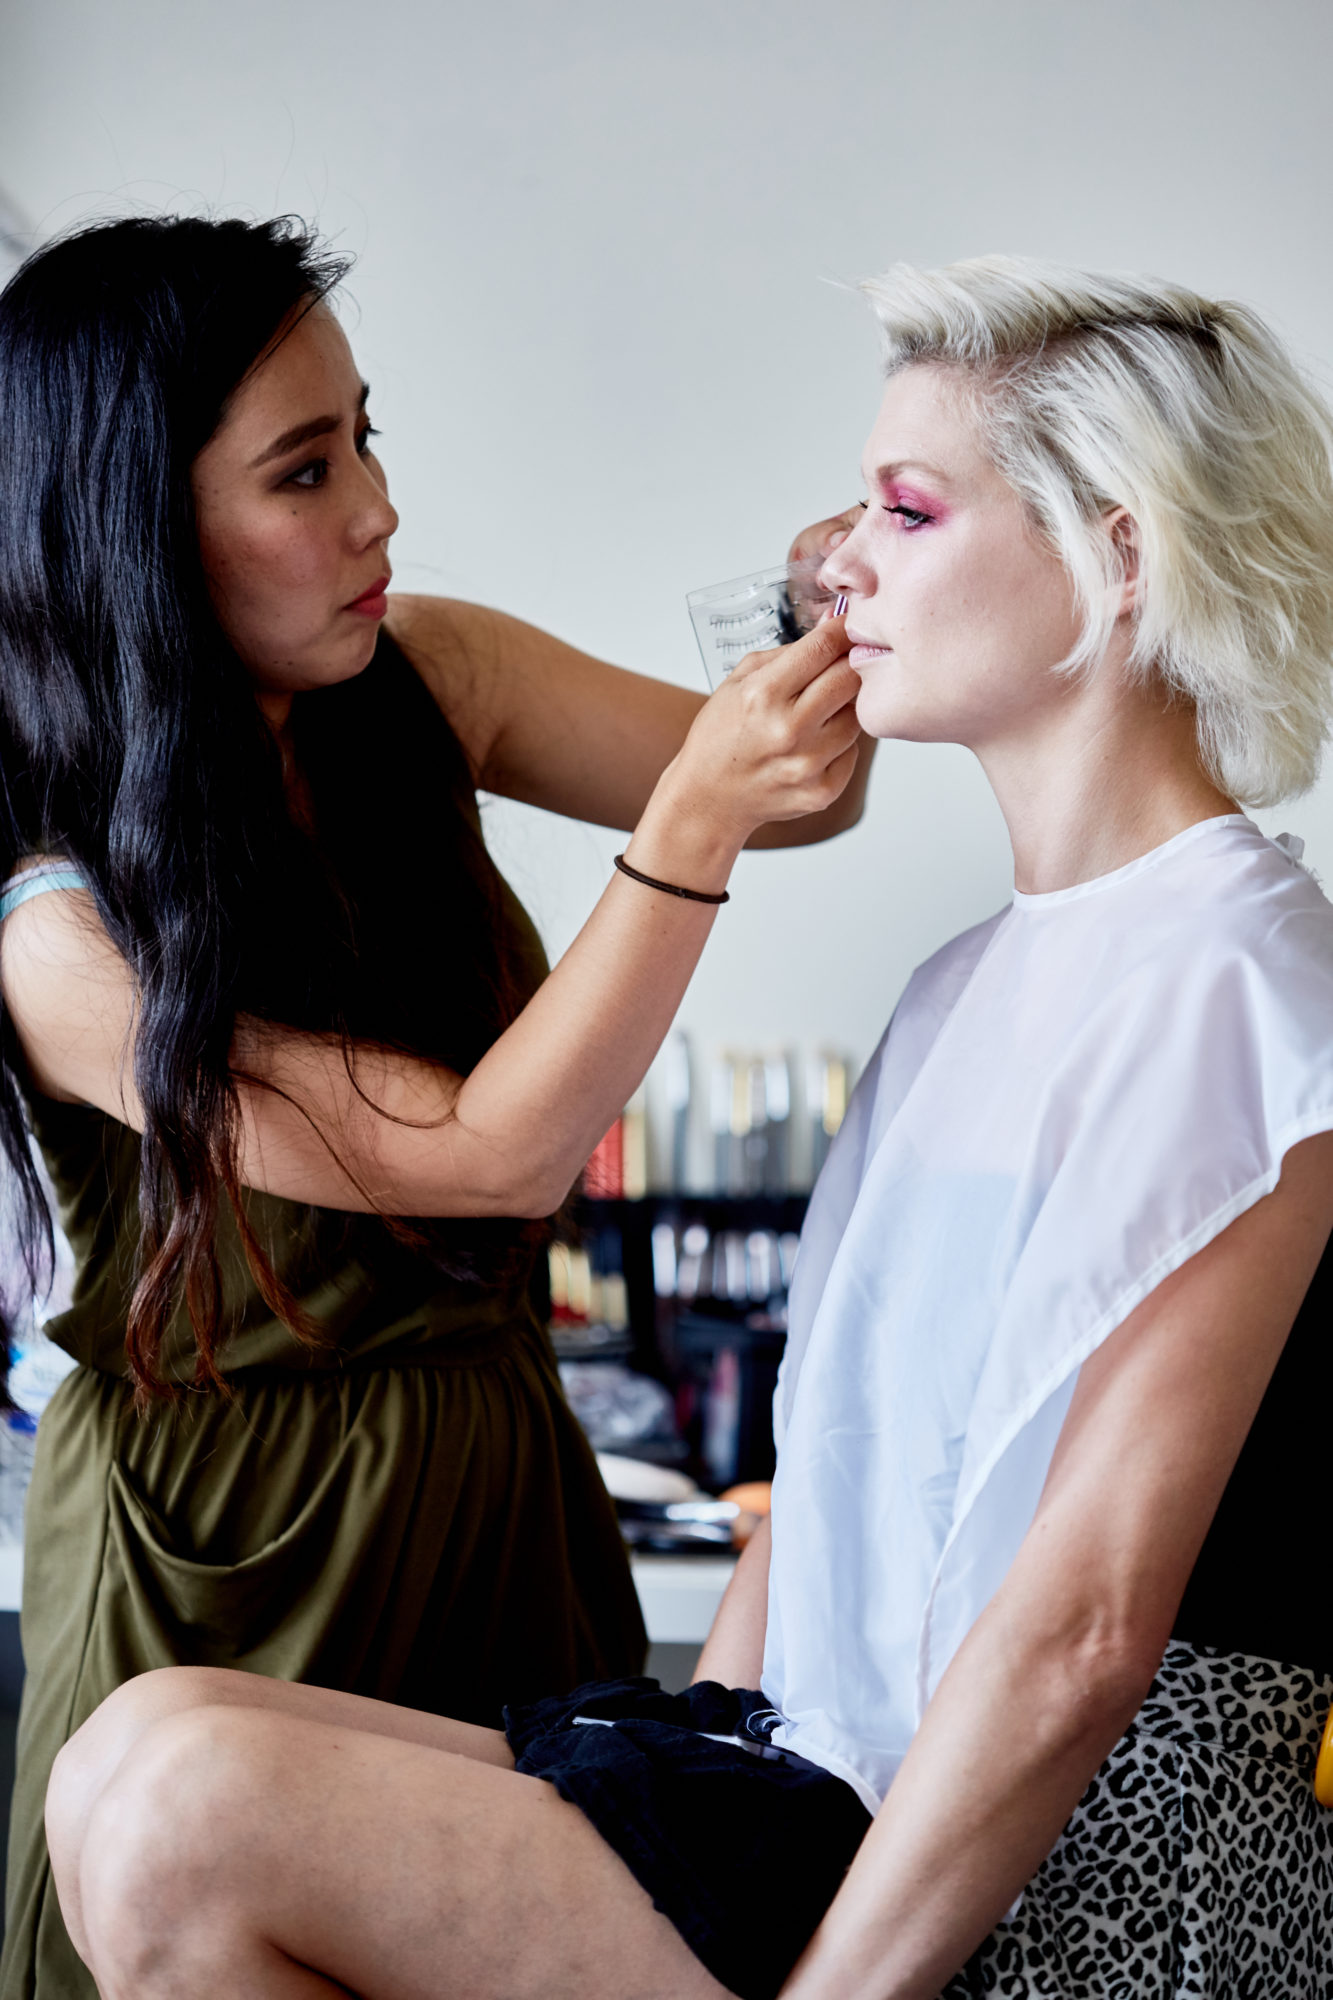 Auxiliary Magazine Behind the Scenes of our Fall 2017 Beauty Photoshoot